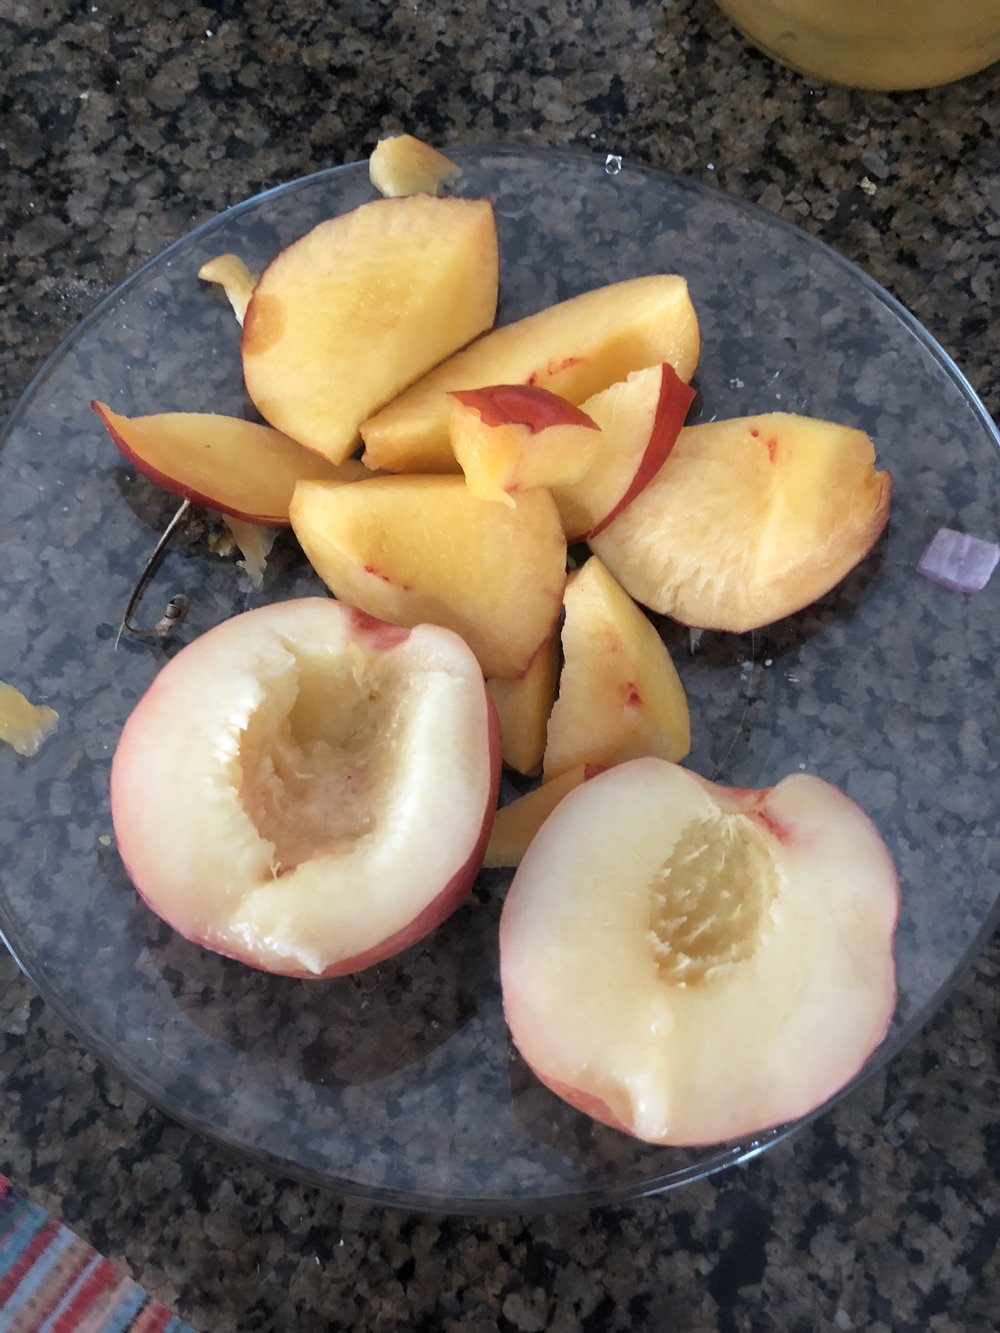 Cut the nectarines in grill-able (should be a word) pieces.